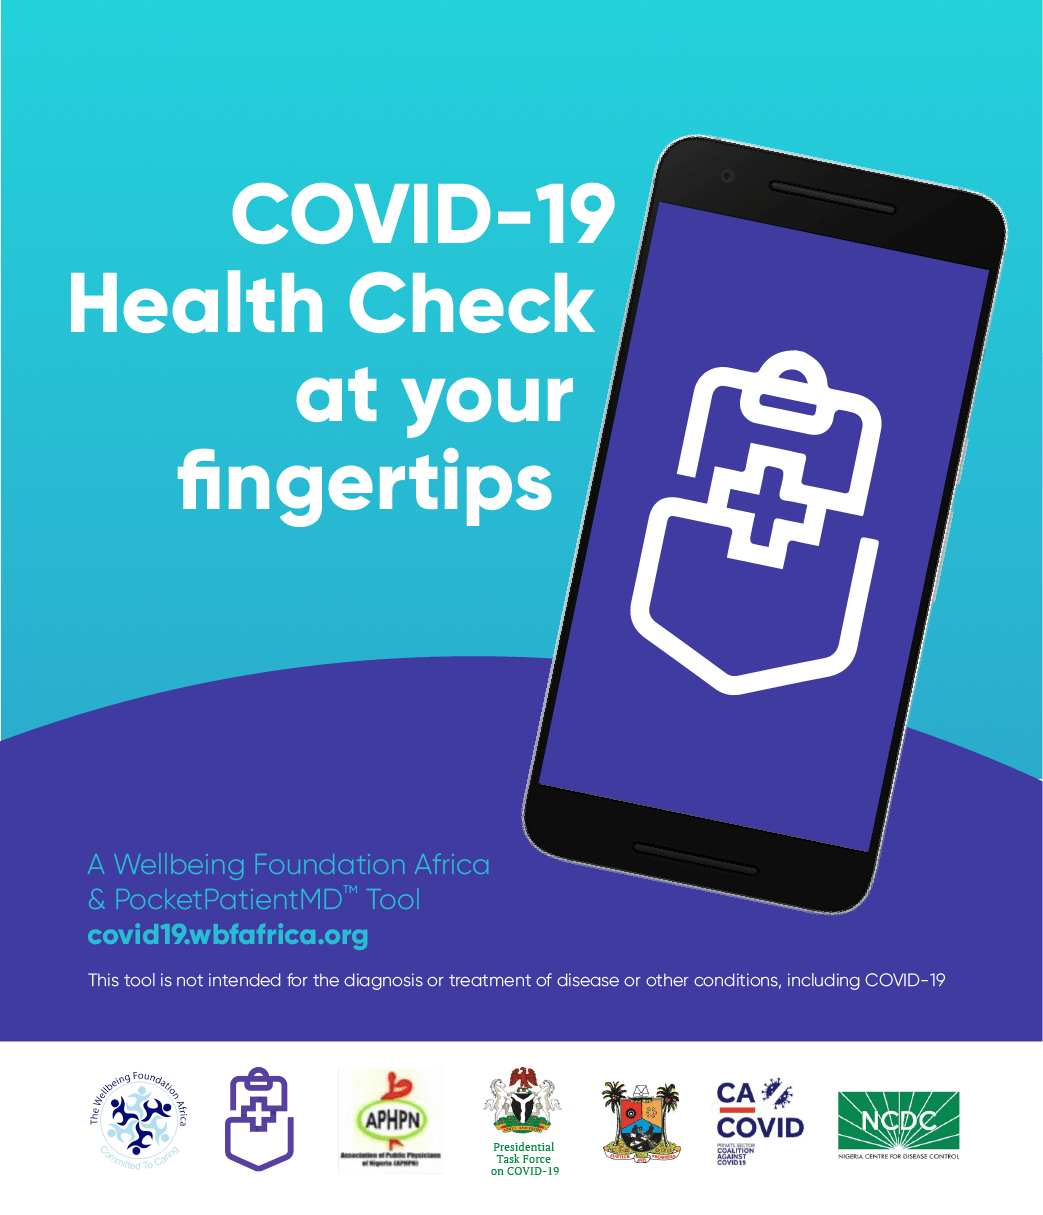 The Wellbeing Foundation Africa partners withPocketPatientMDto help Nigeria fight the COVID-19 pandemic with aunique e-health check tool » YNaija